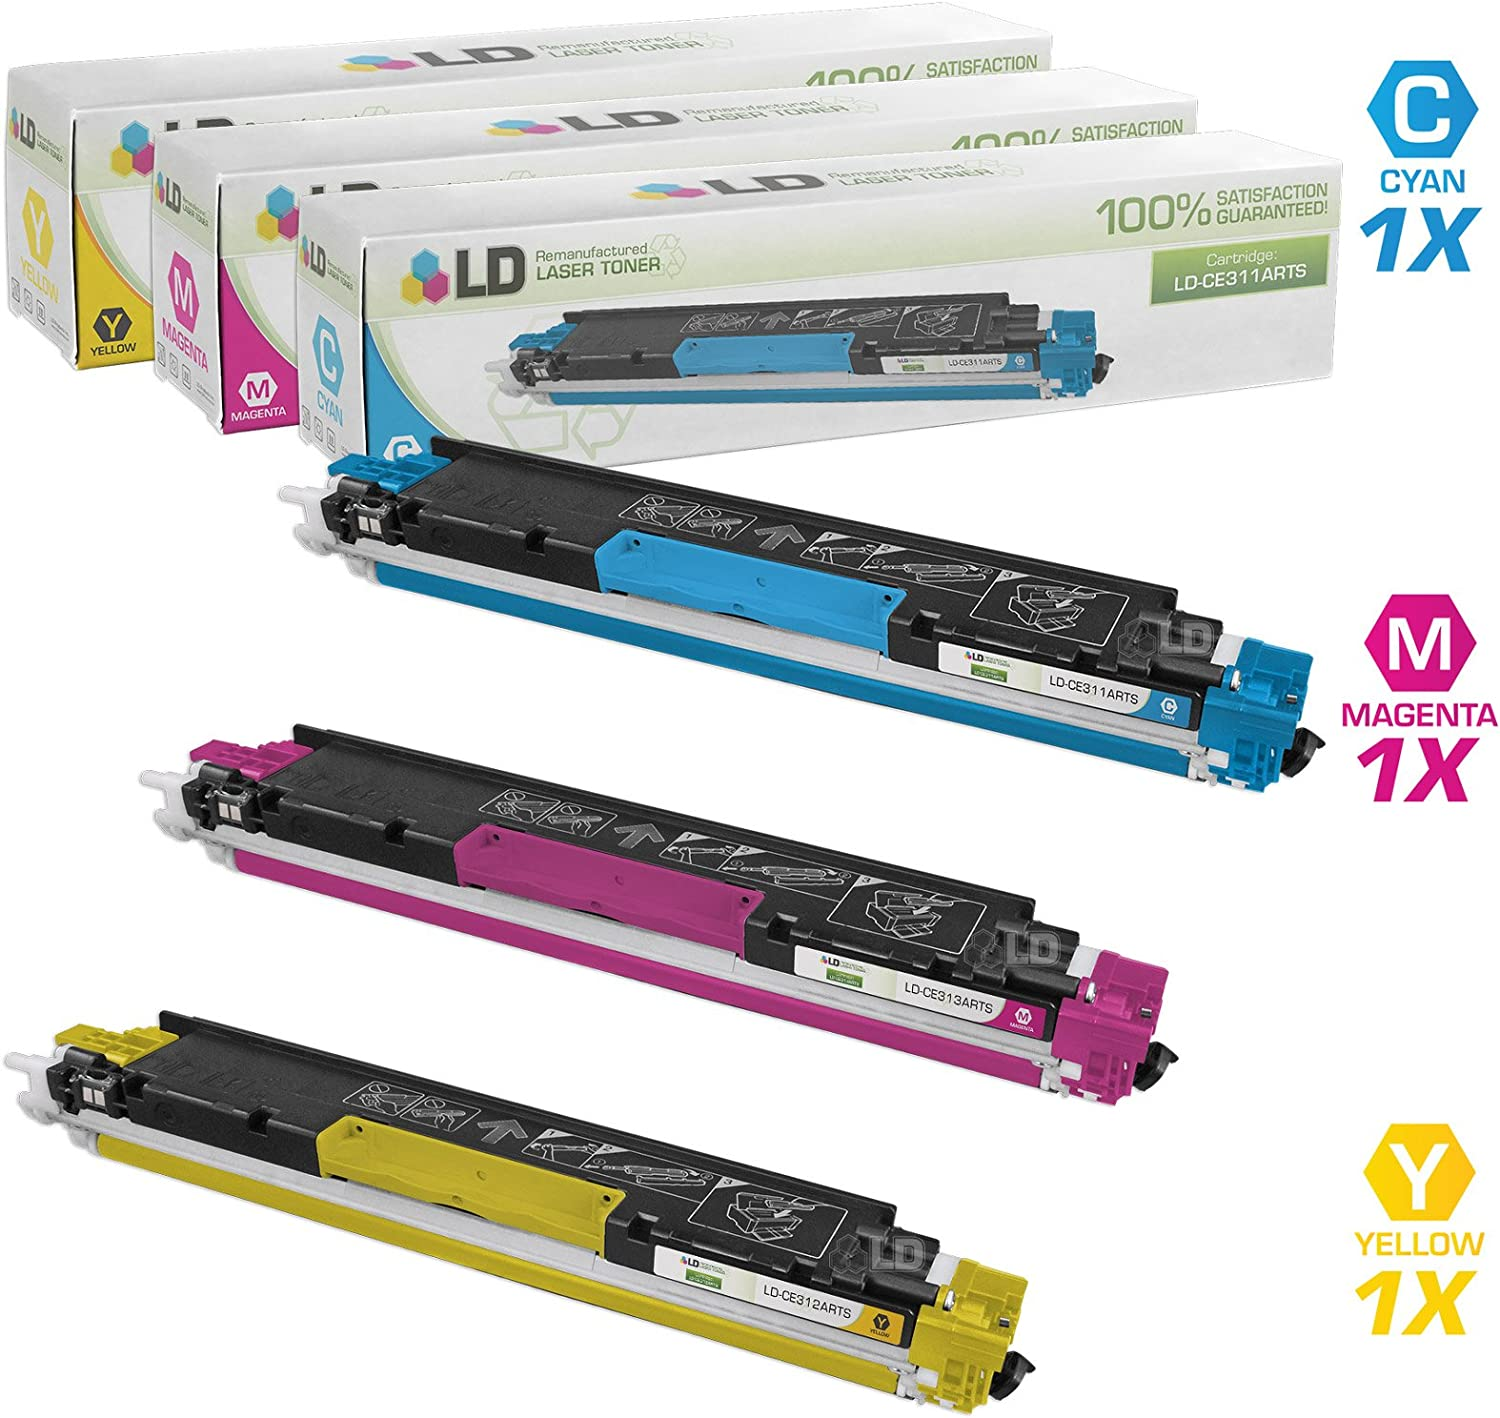 LD Remanufactured Toner Cartridge Replacement for HP 126A (Cyan, Magenta, Yellow, 3-Pack)